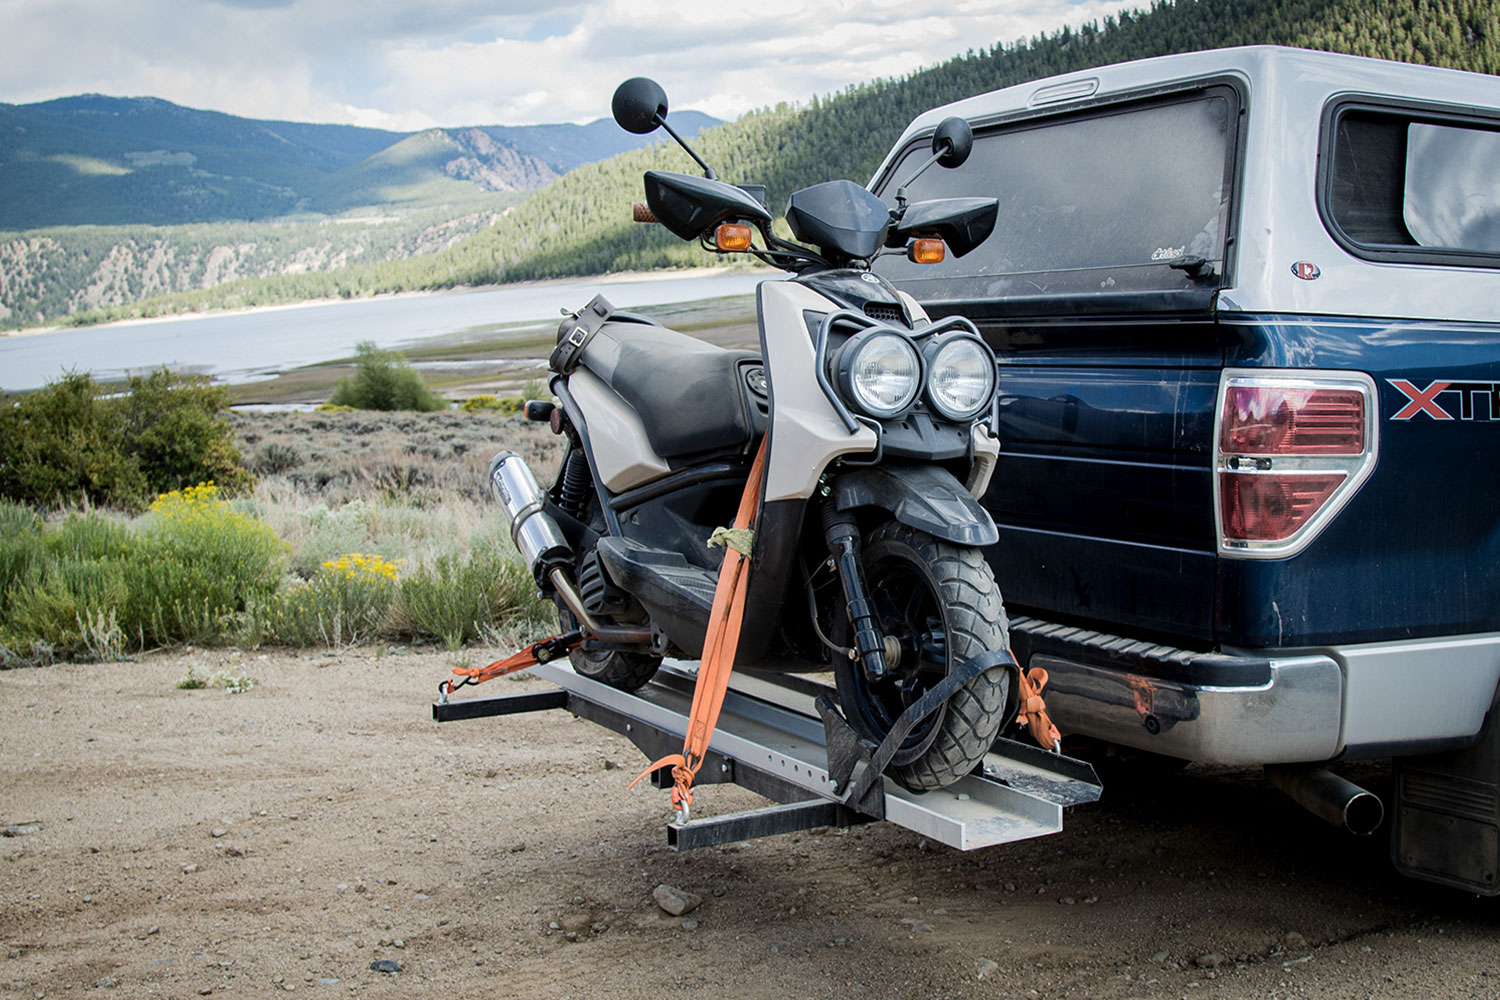 Discount Ramps Black Widow Deluxe Motorcycle Carrier in wildernss